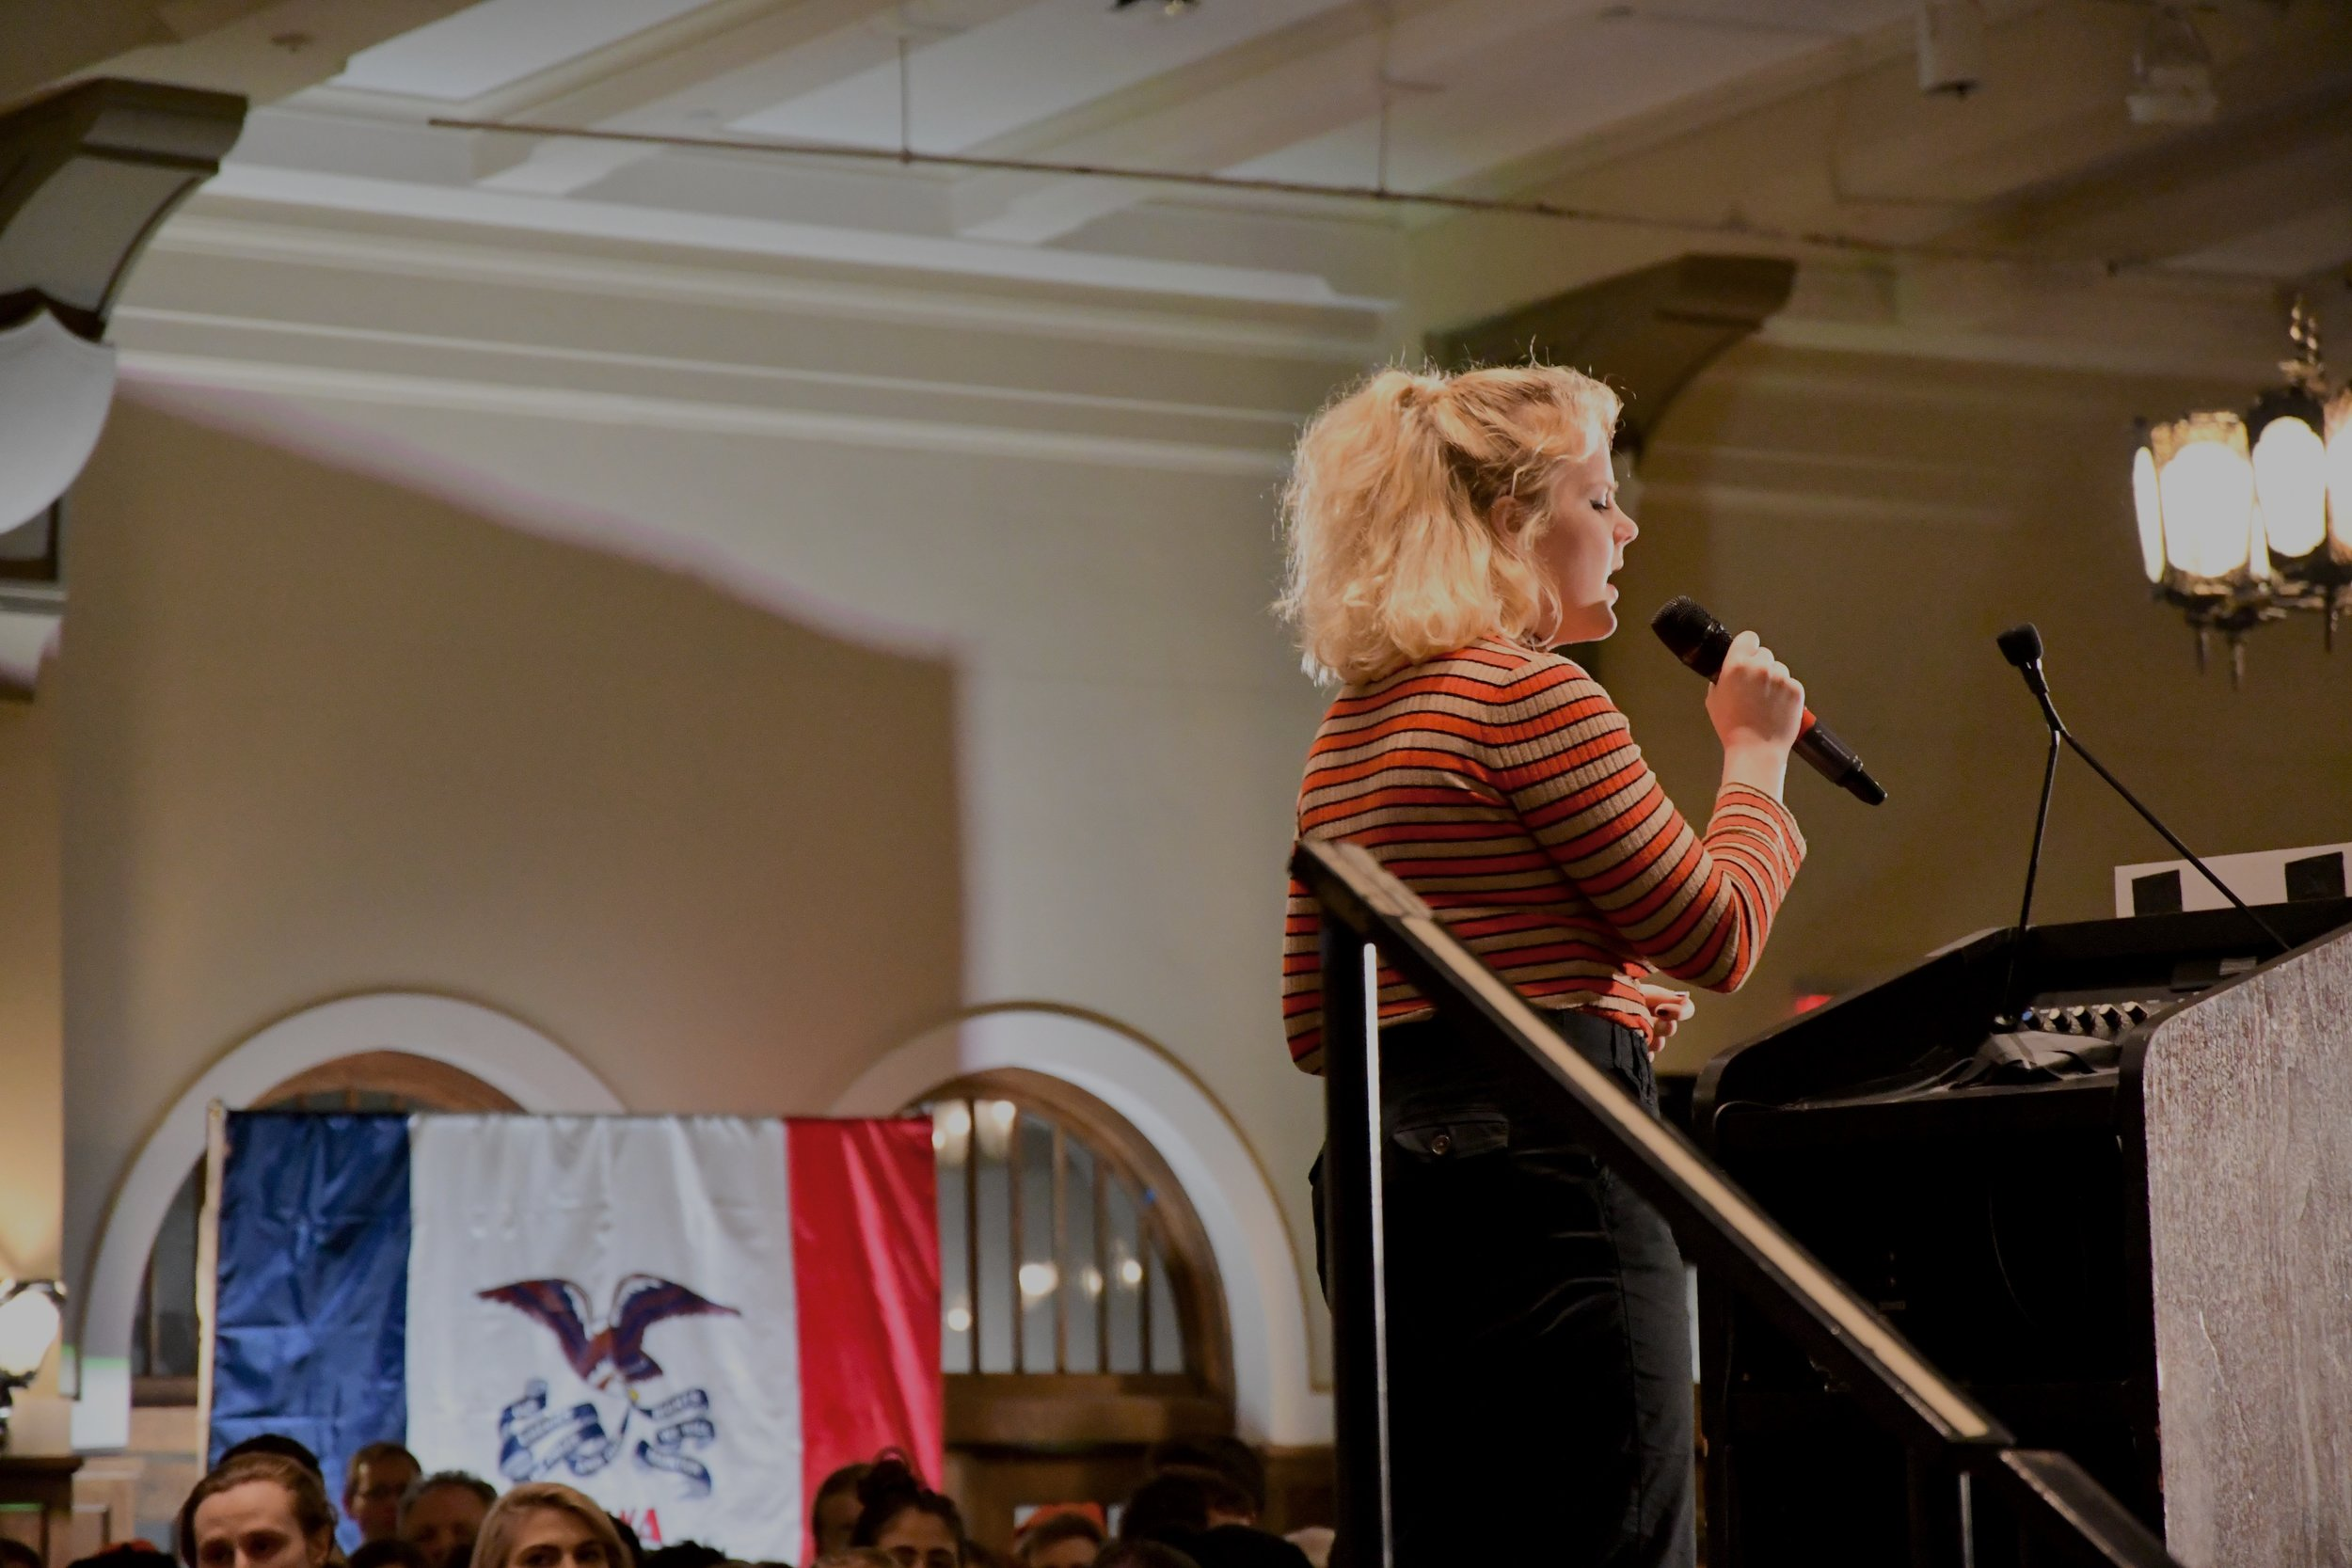 University of Iowa student Elly Hofmaier performing the United States National Anthem at the rally on Friday March 8th, 2019.  Photo by Olivia Harter